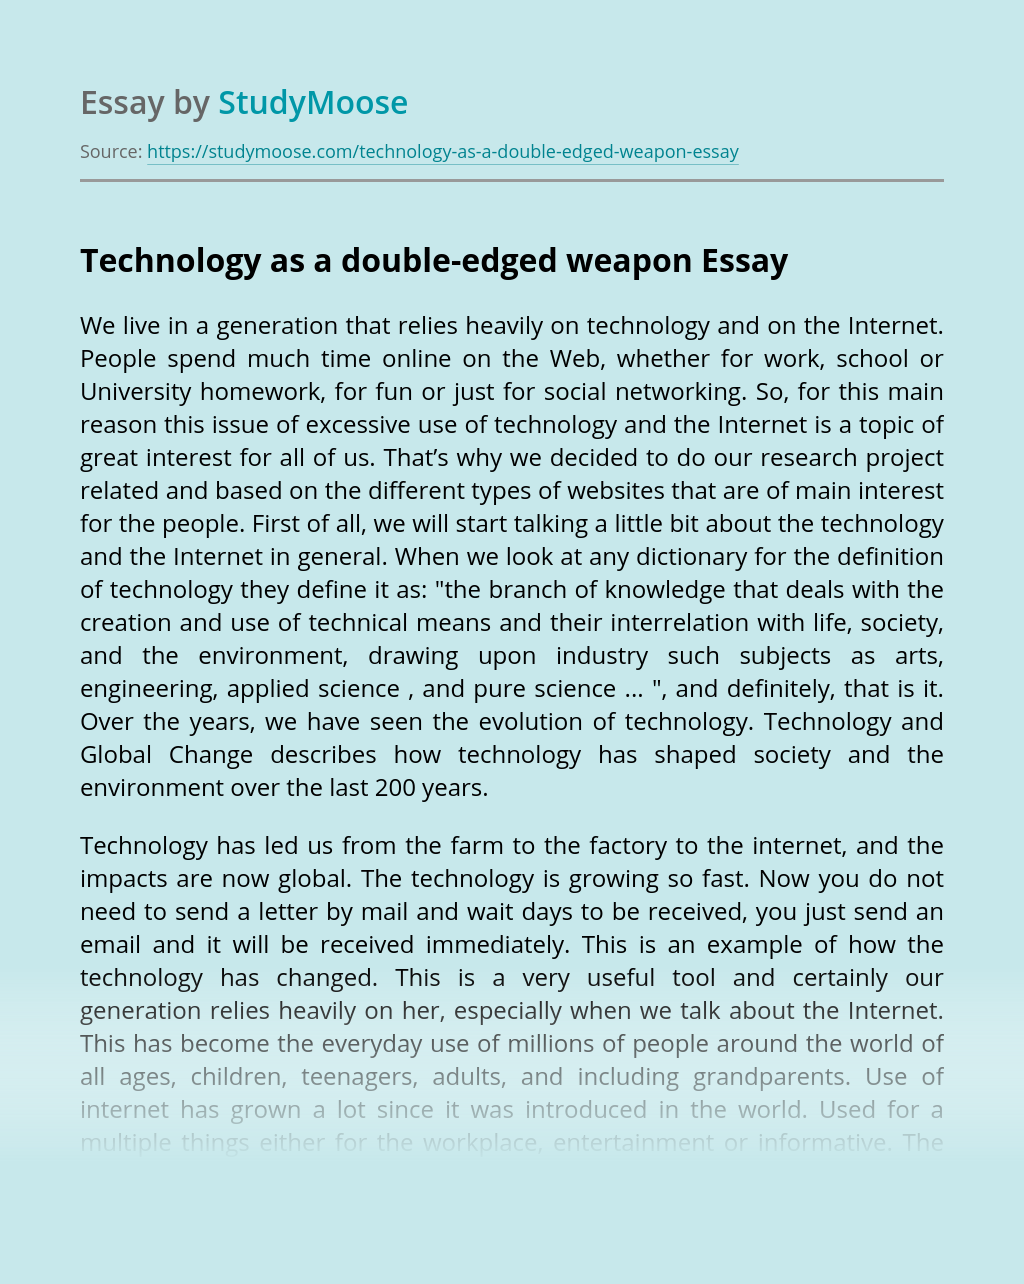 Technology as a double-edged weapon